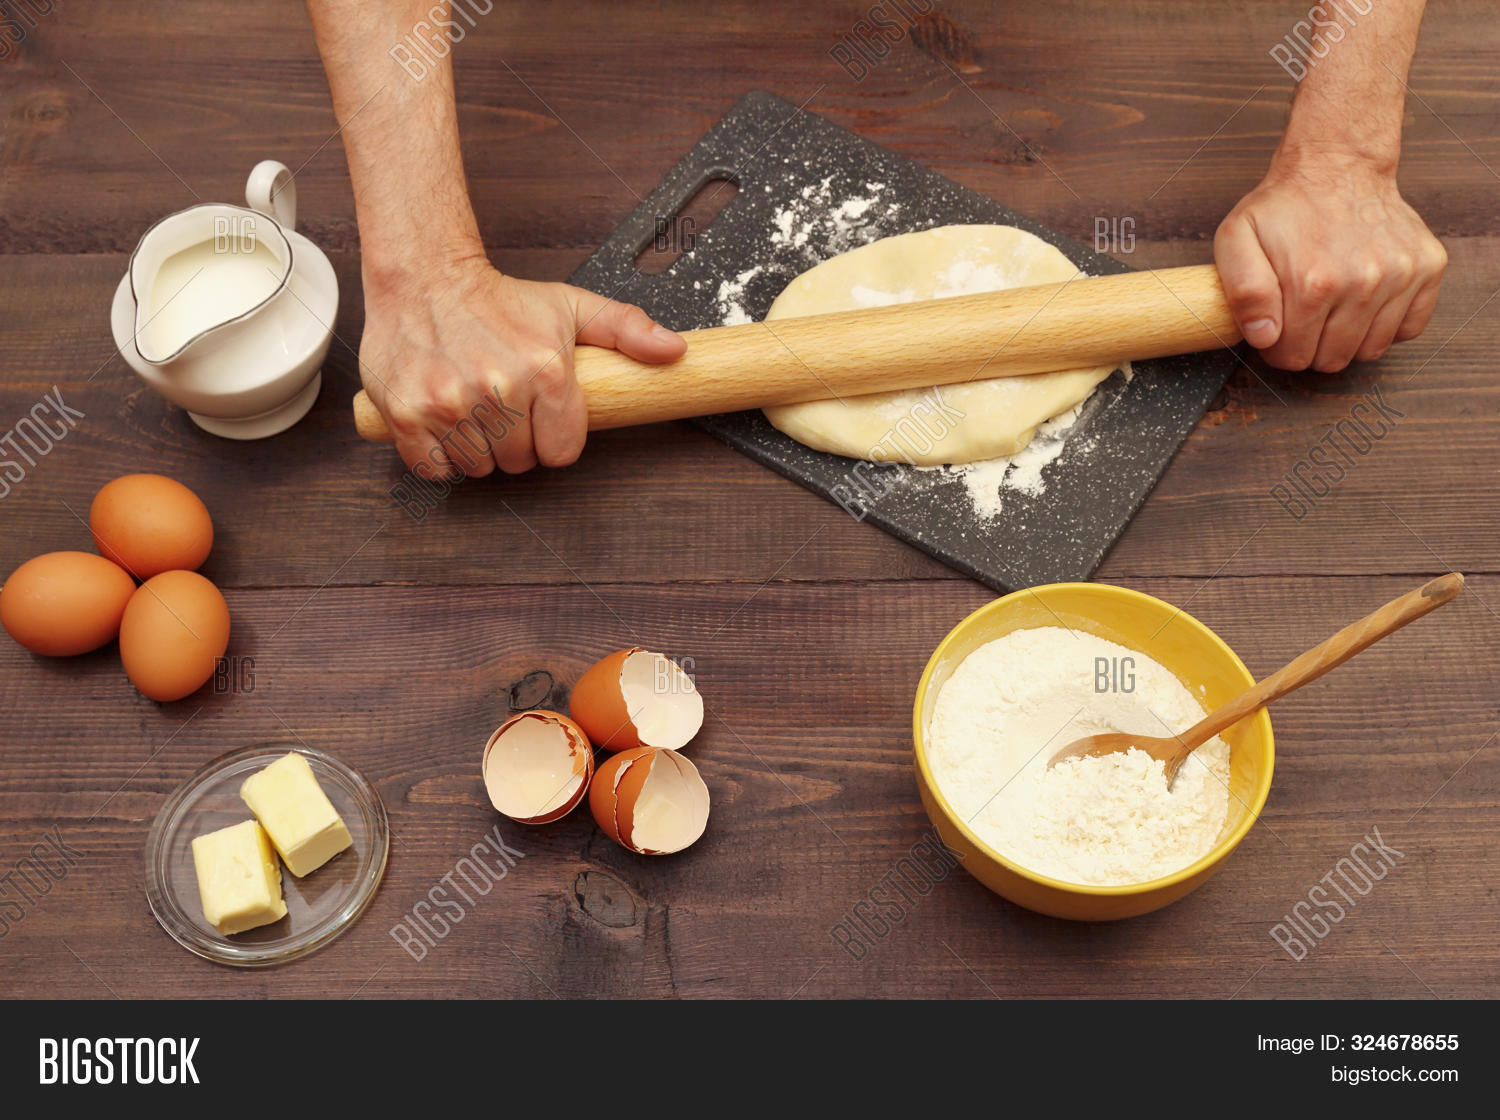 Baker Rolling Dough With Rolling Pin On The Board On A Rustic Table.